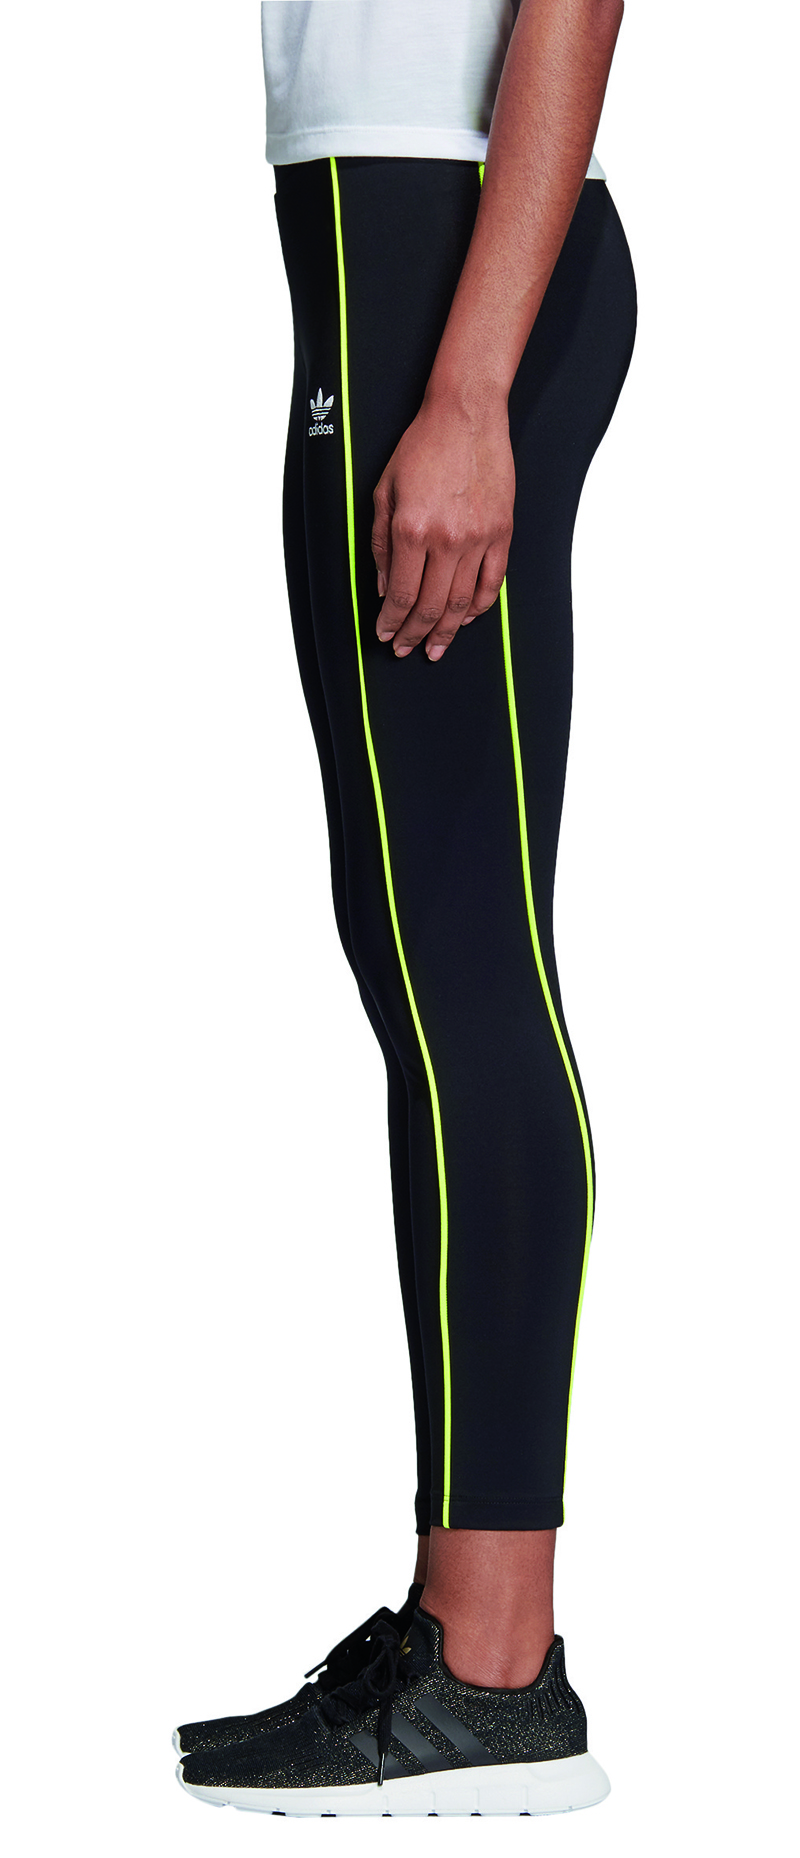 a68addb1 Details about Adidas Leggings Women's Stretch Trousers Sports Pants  Trackies Leggings